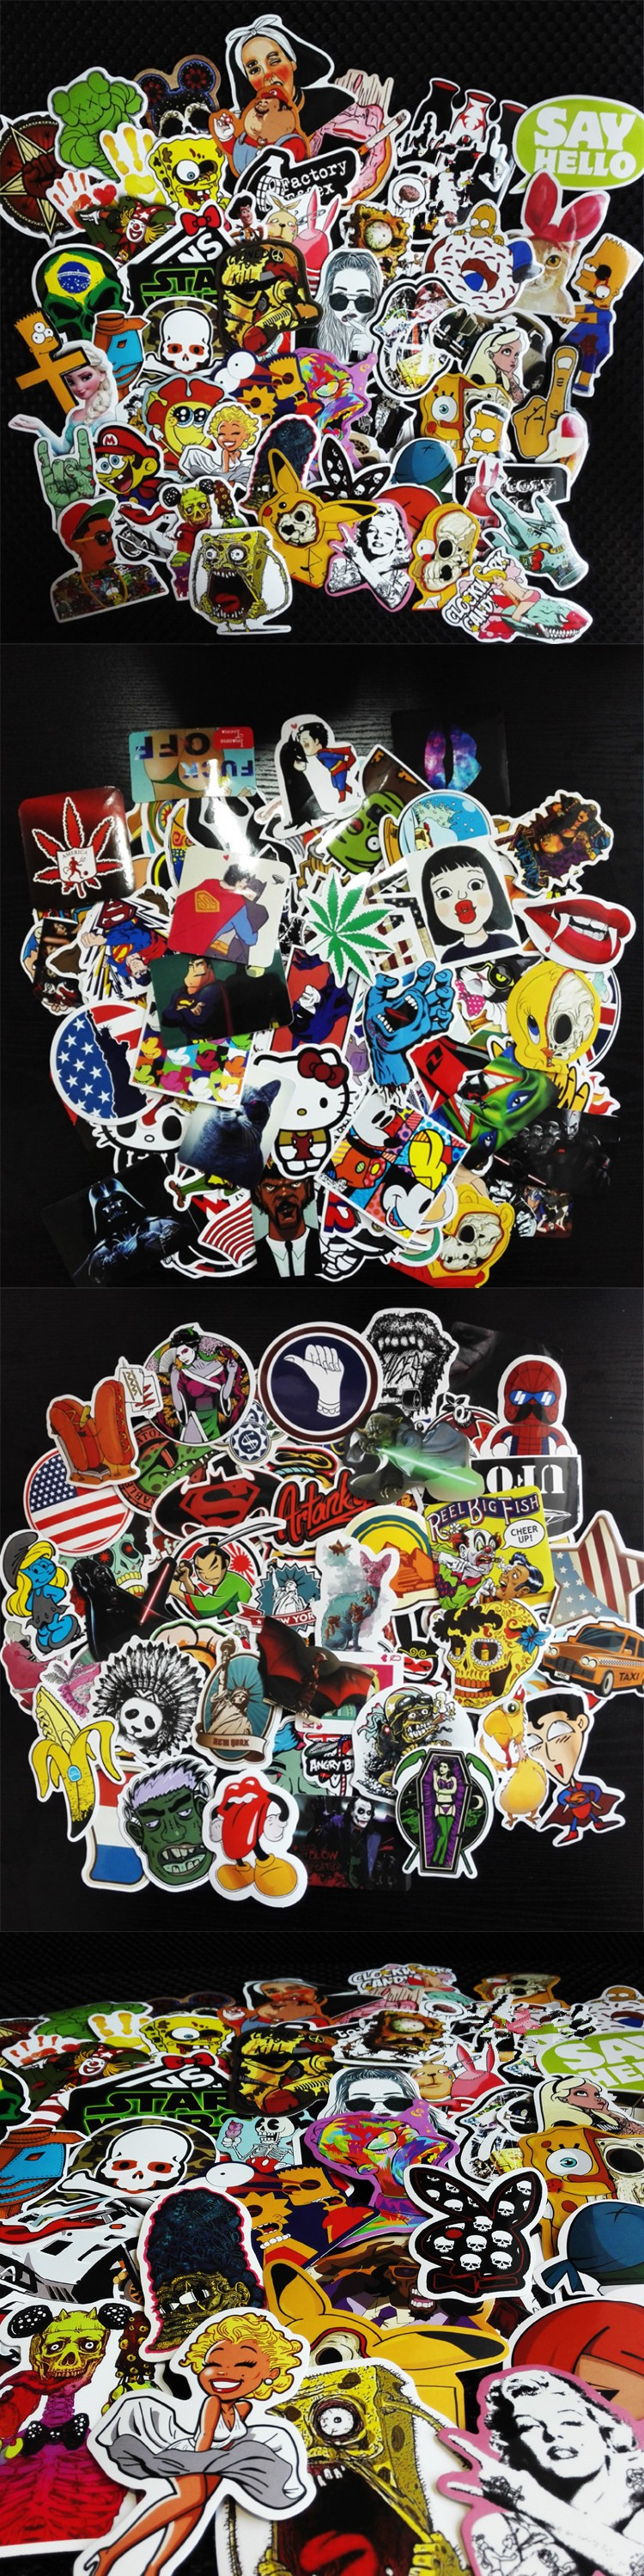 2016 50Pcs Fashion cool DIY Mixed Stickers for Skateboard Laptop Luggage Snowboard Fridge Phone toy Styling home decor Stickers $5.99